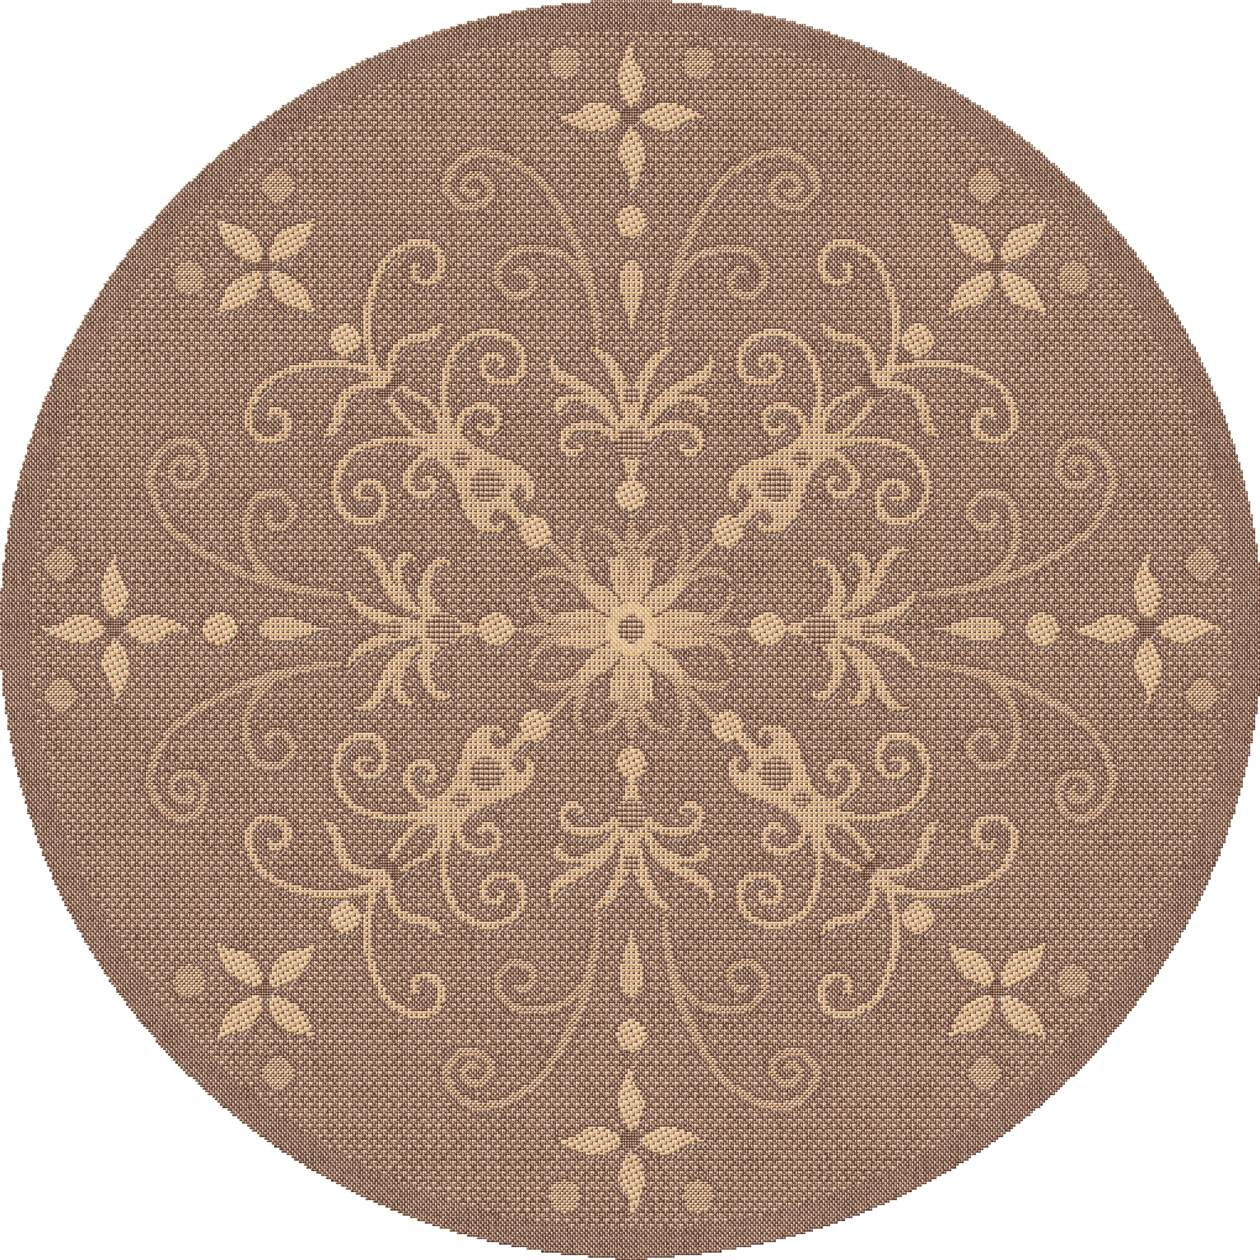 Dynamic Rugs Piazza Floral Brown 2583 Area Rug